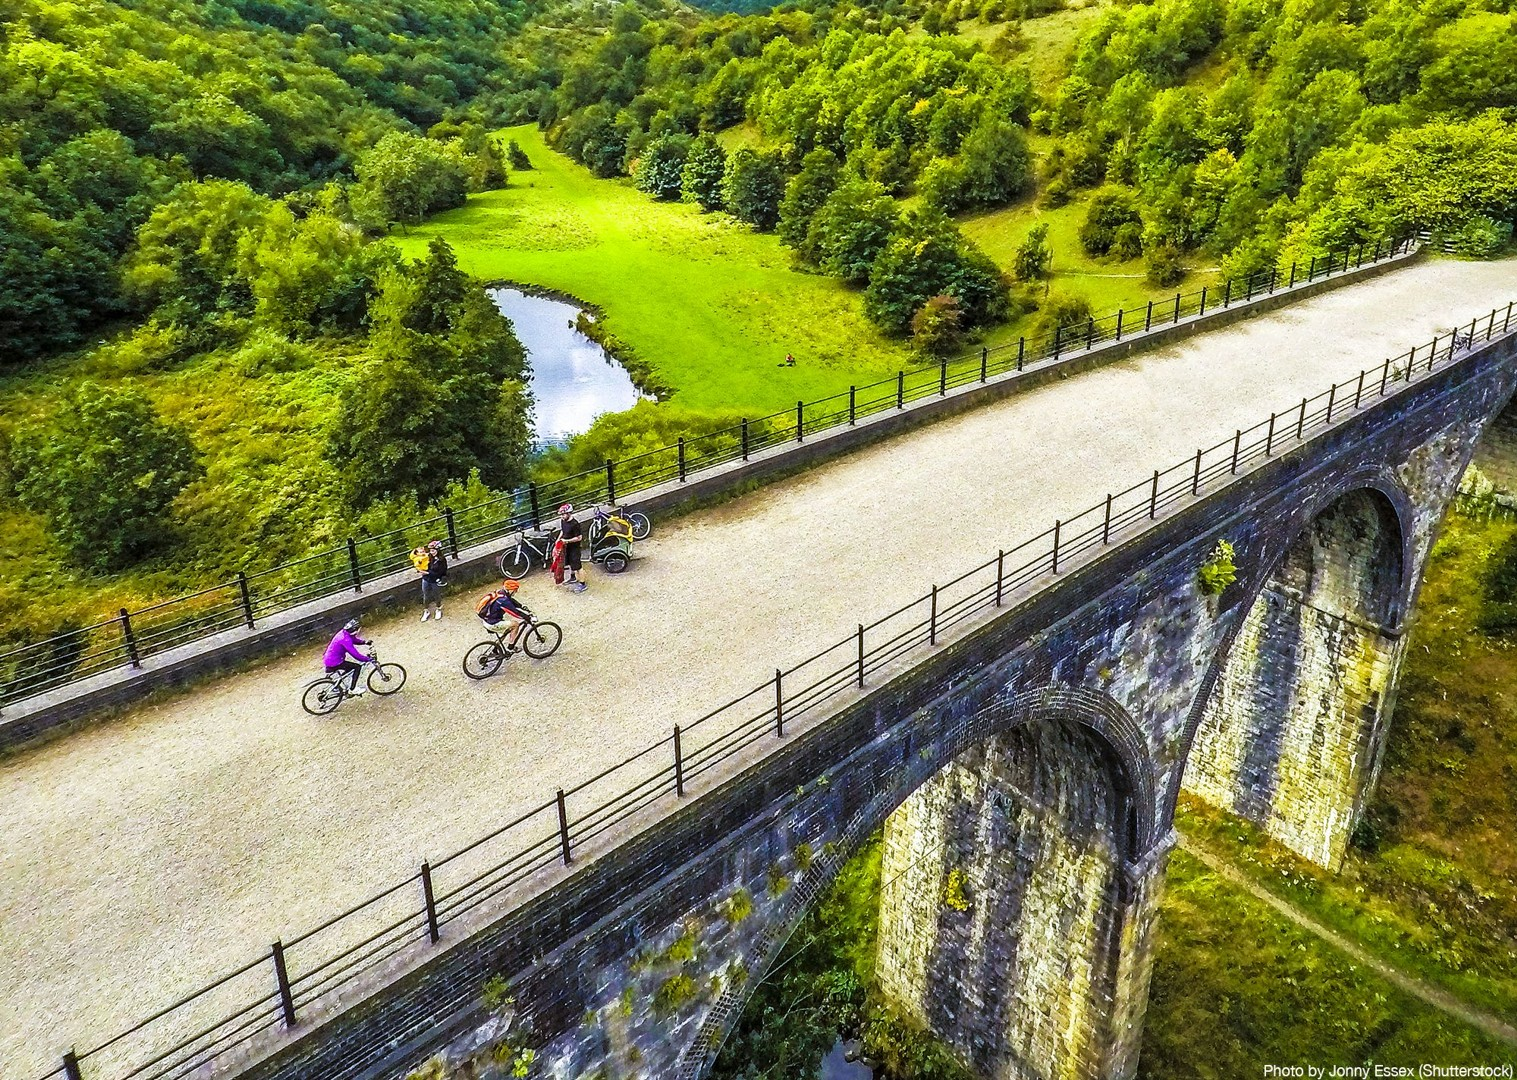 uk-derbyshire-dales-dovedale-guided-leisure-cycling-holday.jpg - UK - Derbyshire Dales - Dovedale - Guided Leisure Cycling Holiday - Leisure Cycling